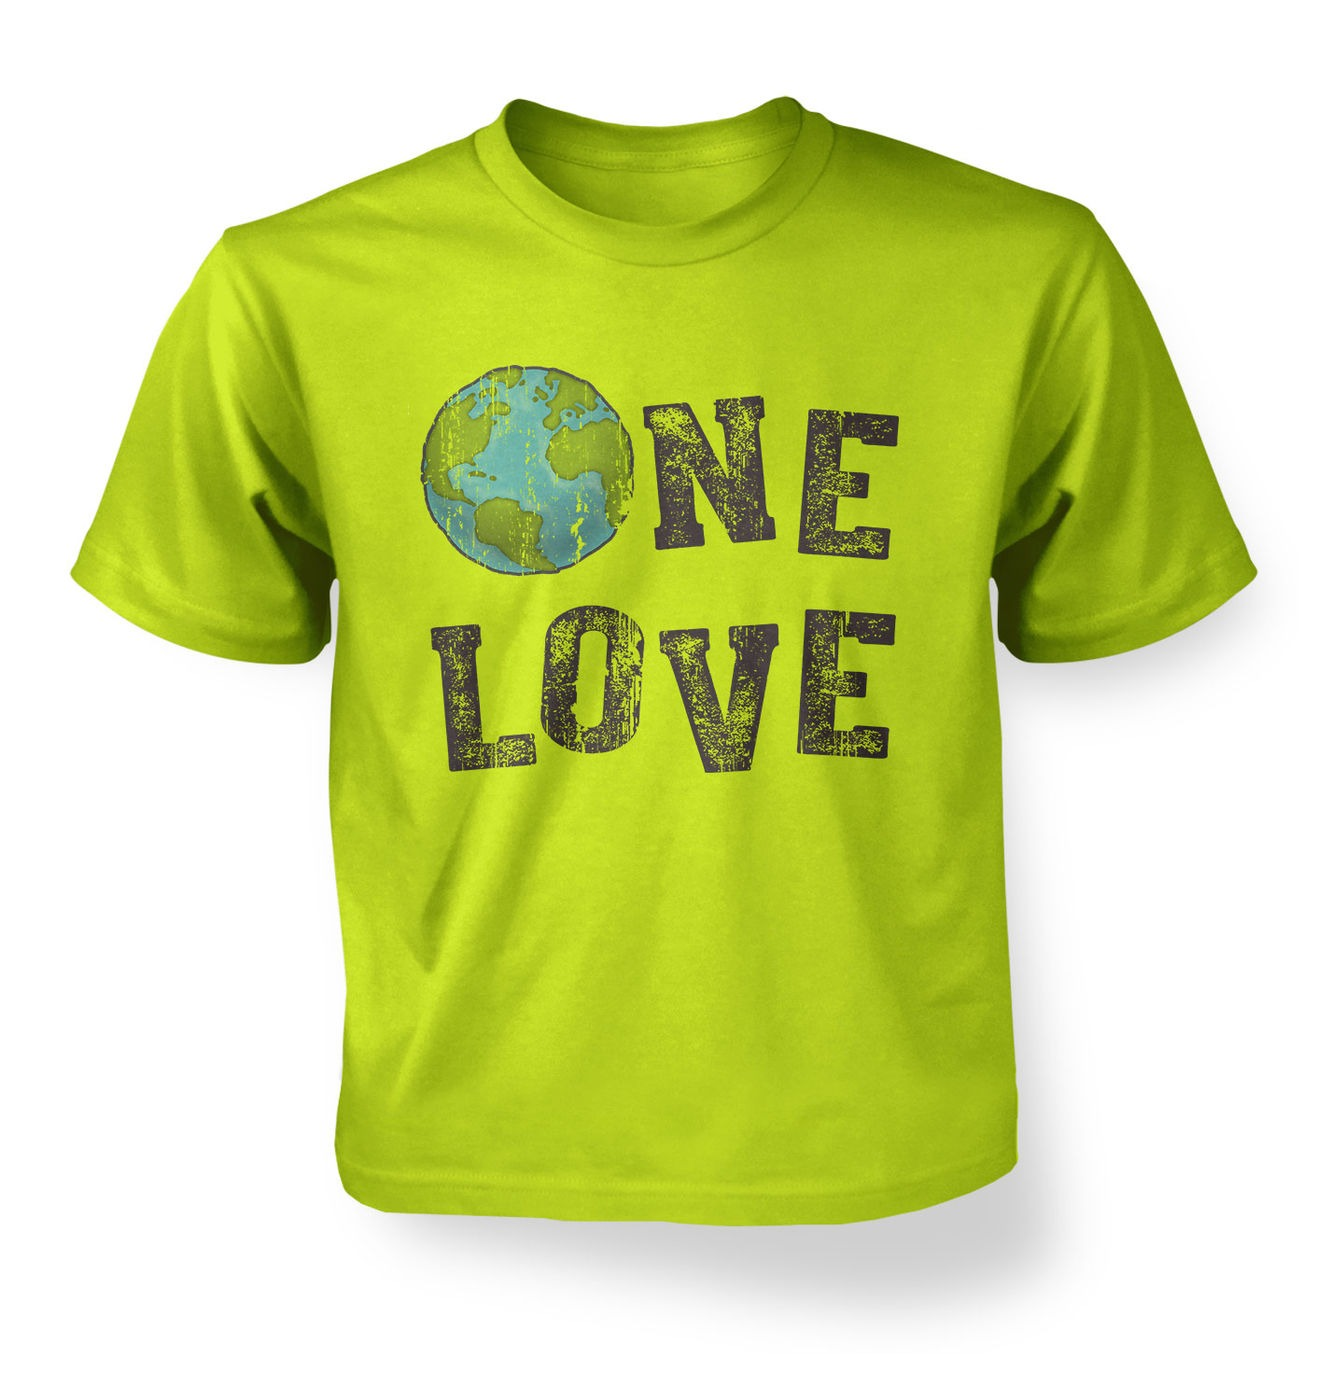 One Love (Earth) kids t-shirt by Something Geeky